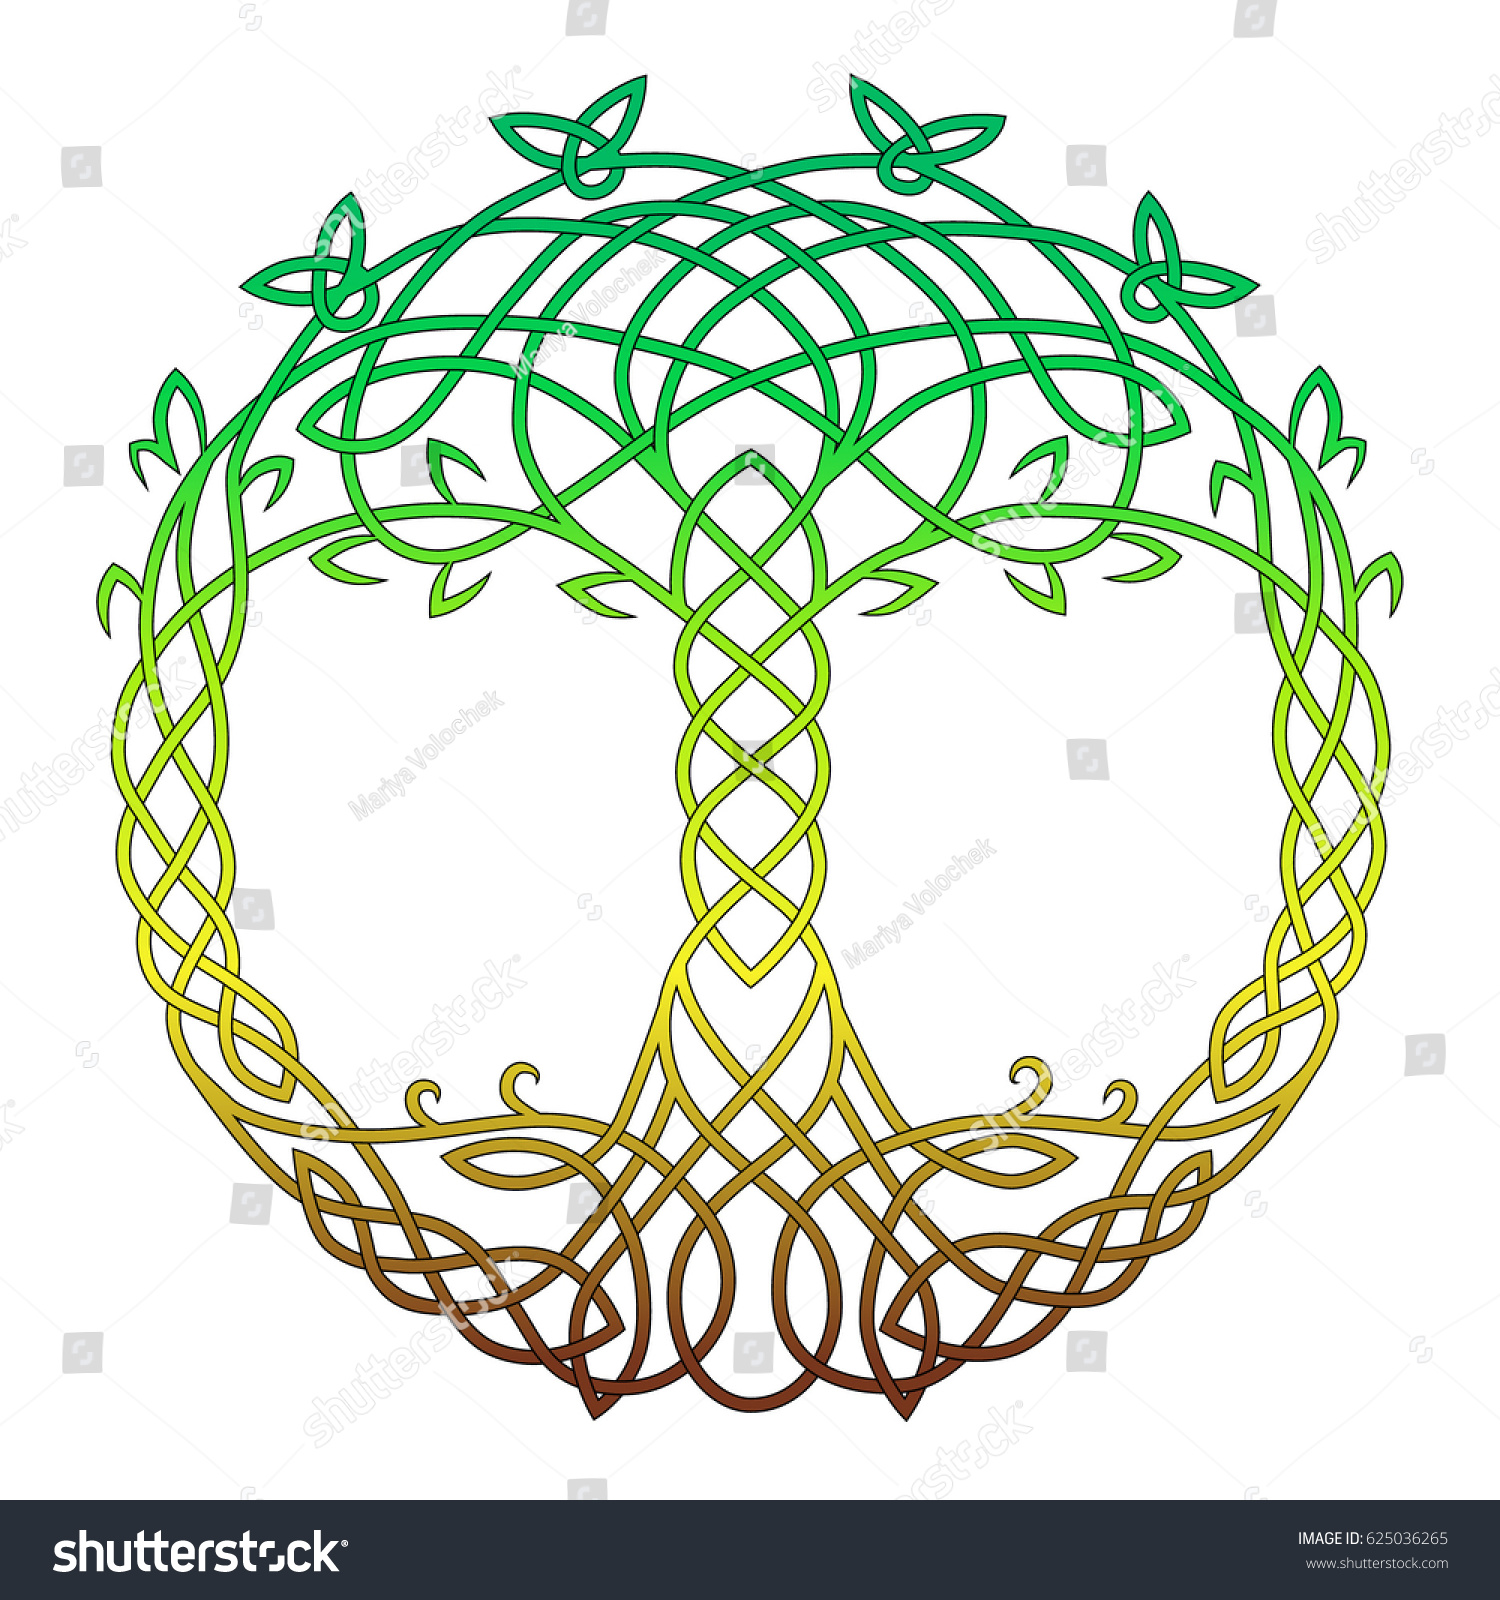 Celtic Round Drawing Symbol Tree Life Stock Vector HD (Royalty Free ...